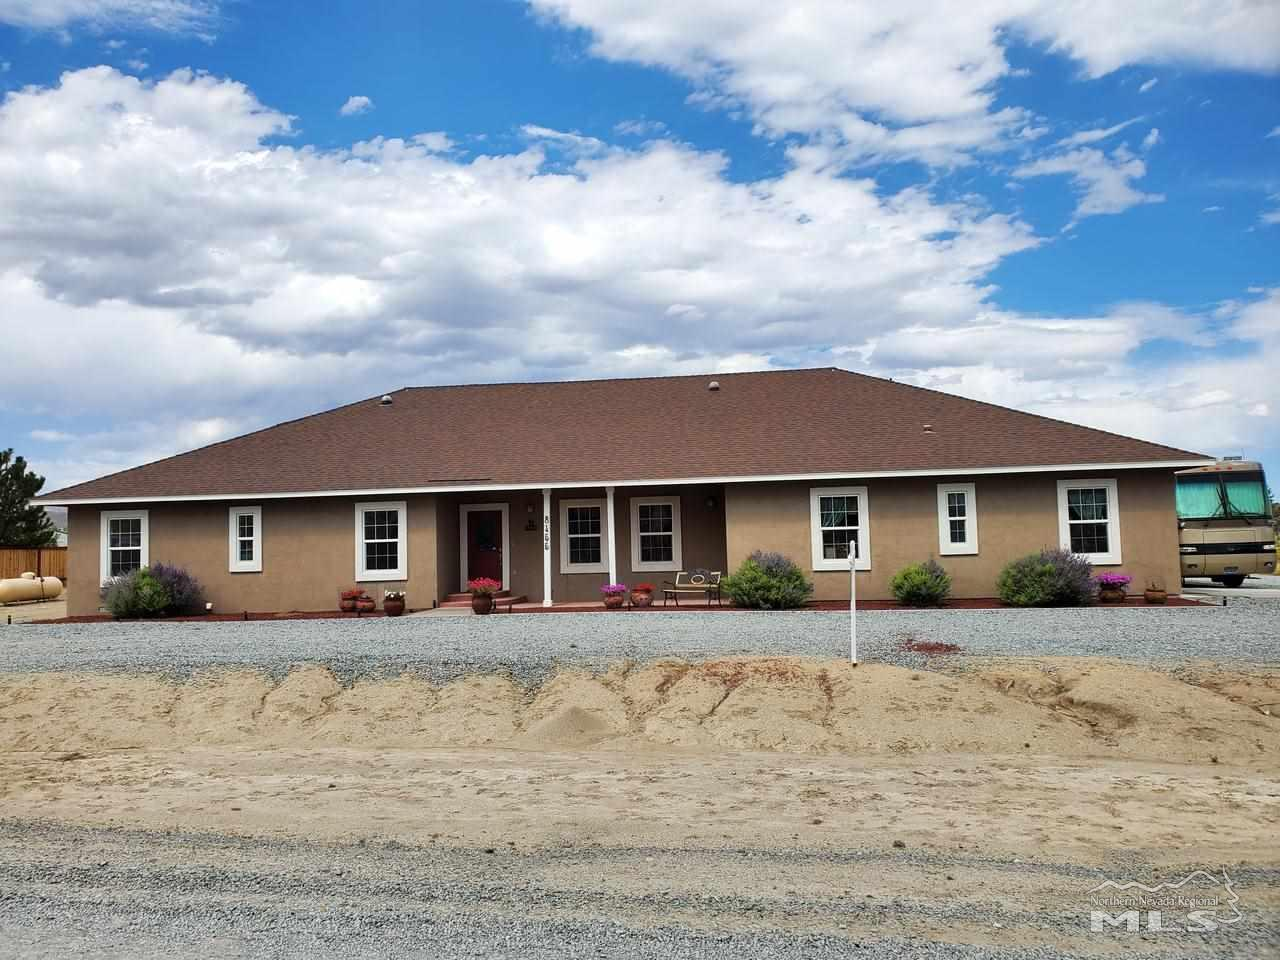 Image for 8455 Osage Rd., Reno, NV 89508